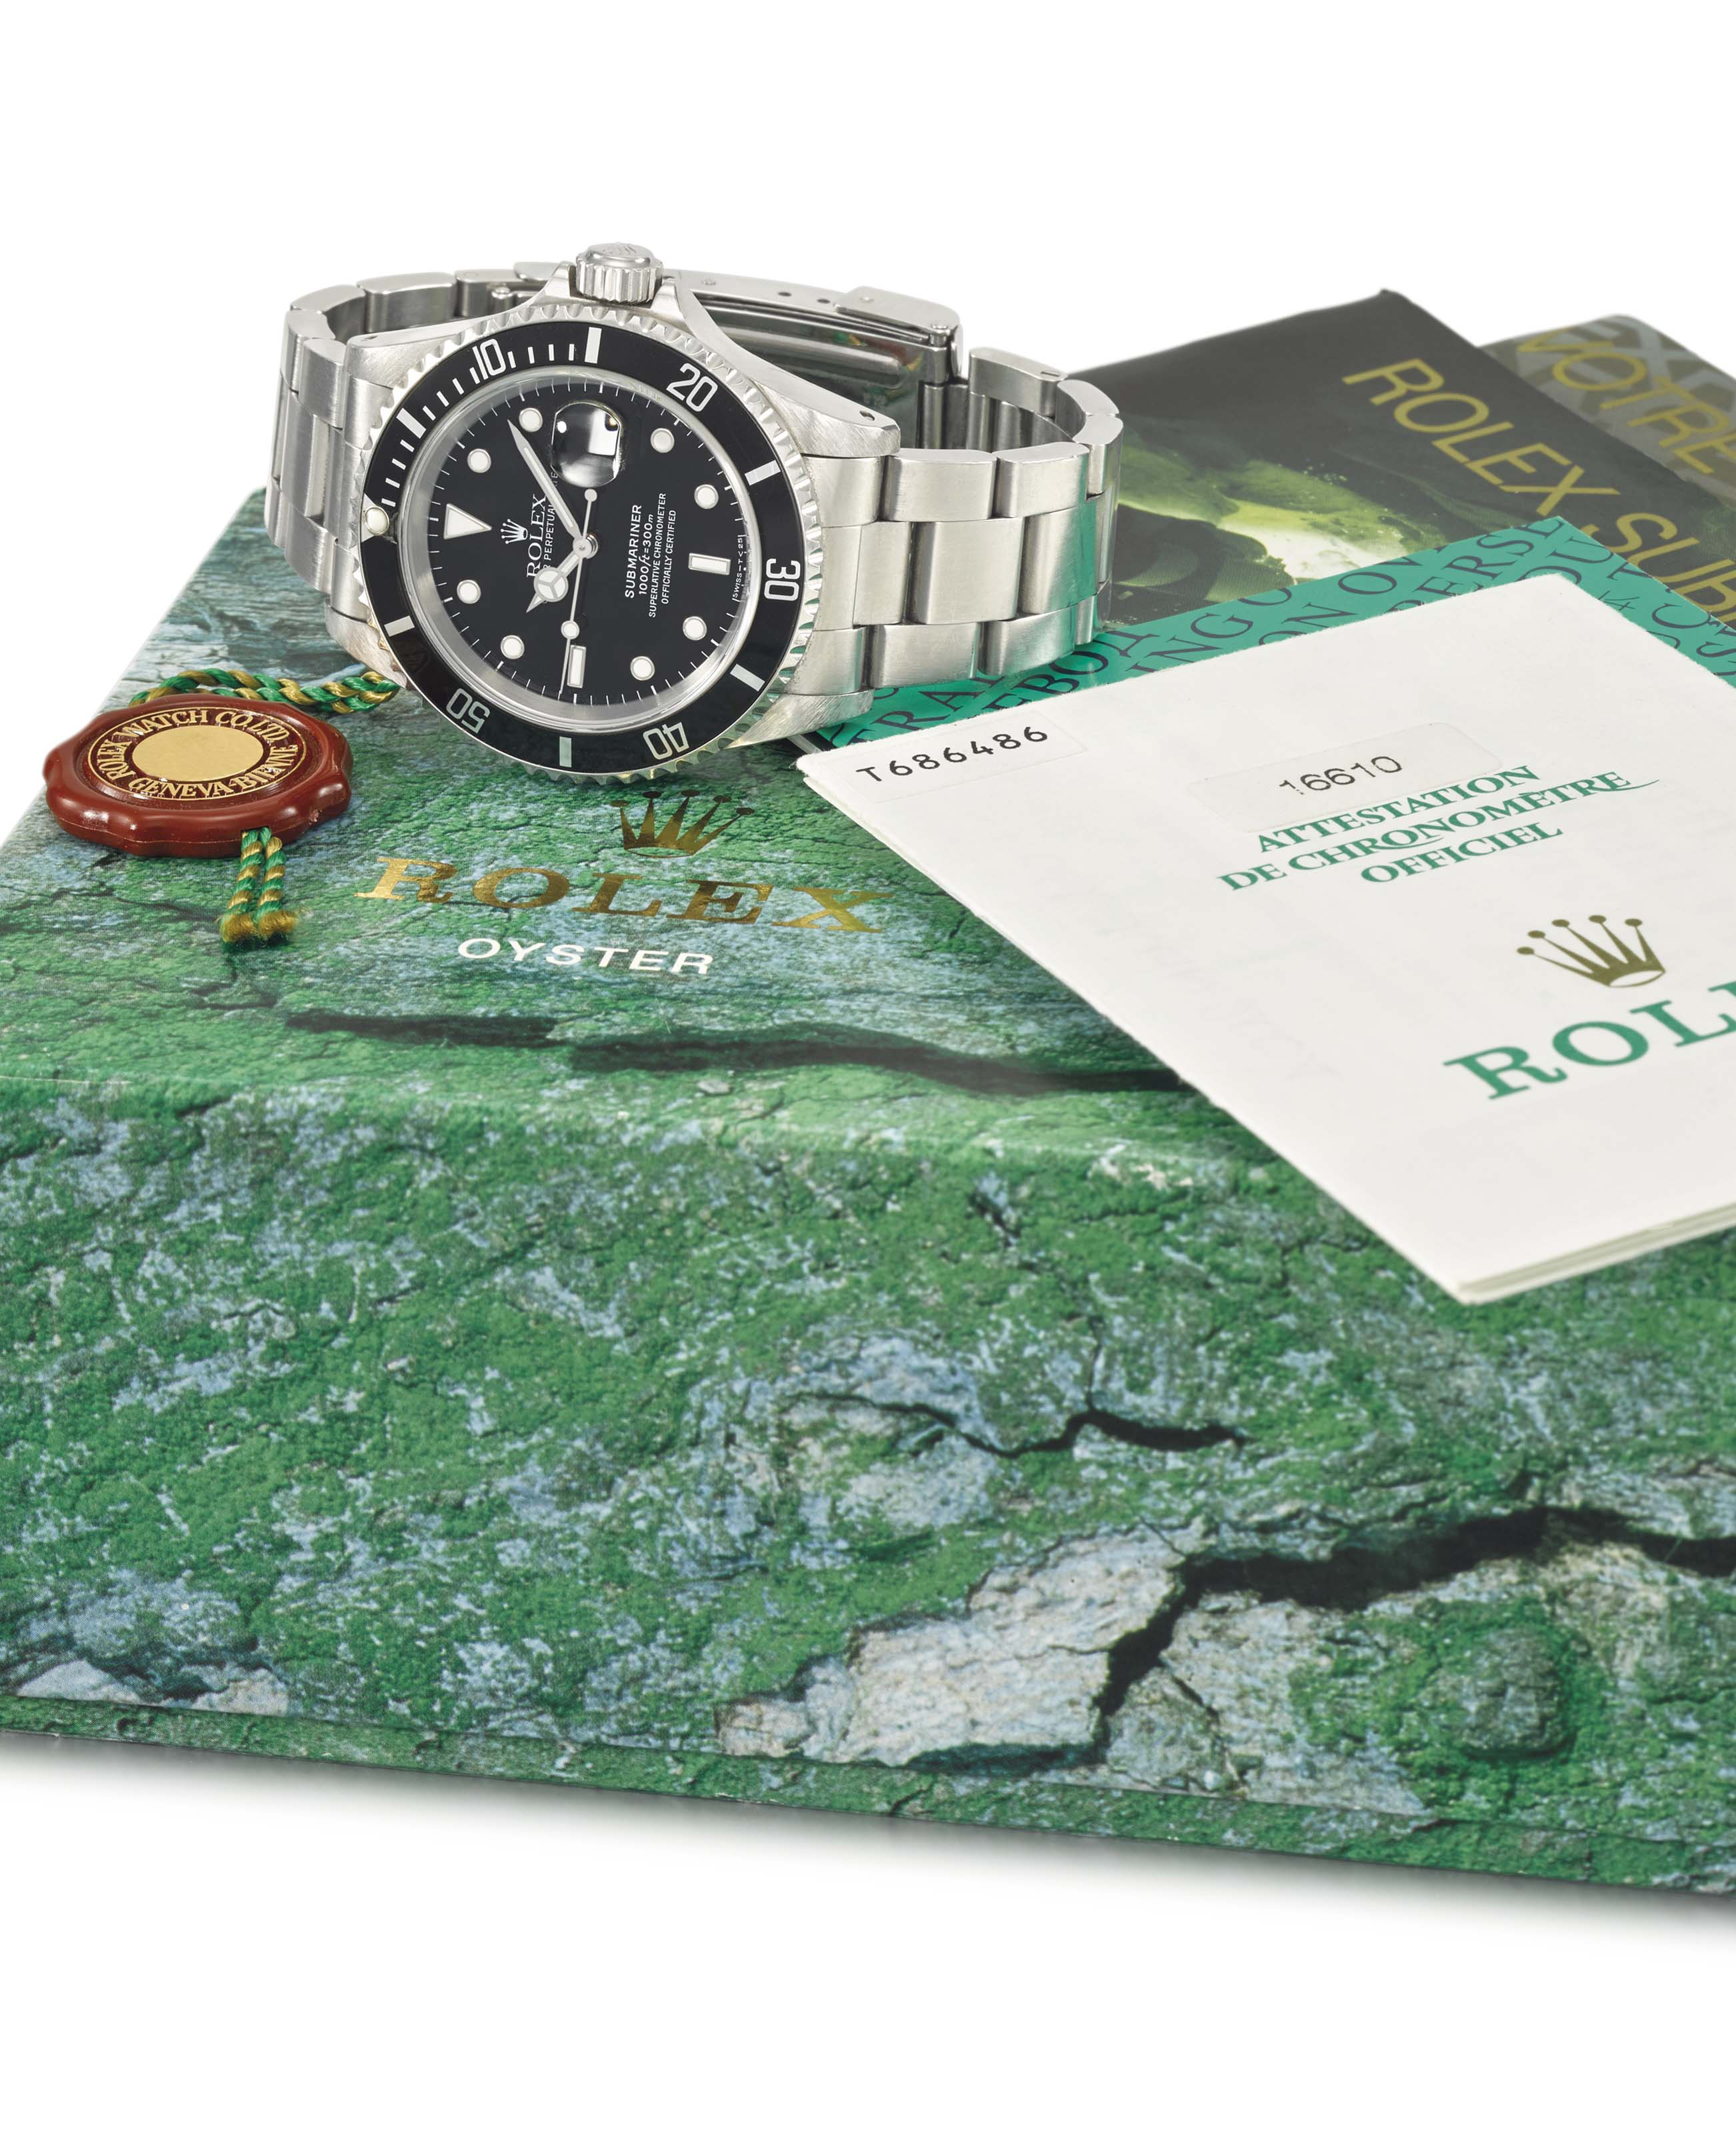 """Rolex. A fine and extremely rare stainless steel automatic wristwatch with sweep centre seconds, date, engraved case back, bracelet, """"Operation Everest"""" documentation, box and Guarantee. Made for the Comex """"Operation Everest"""" experiment"""